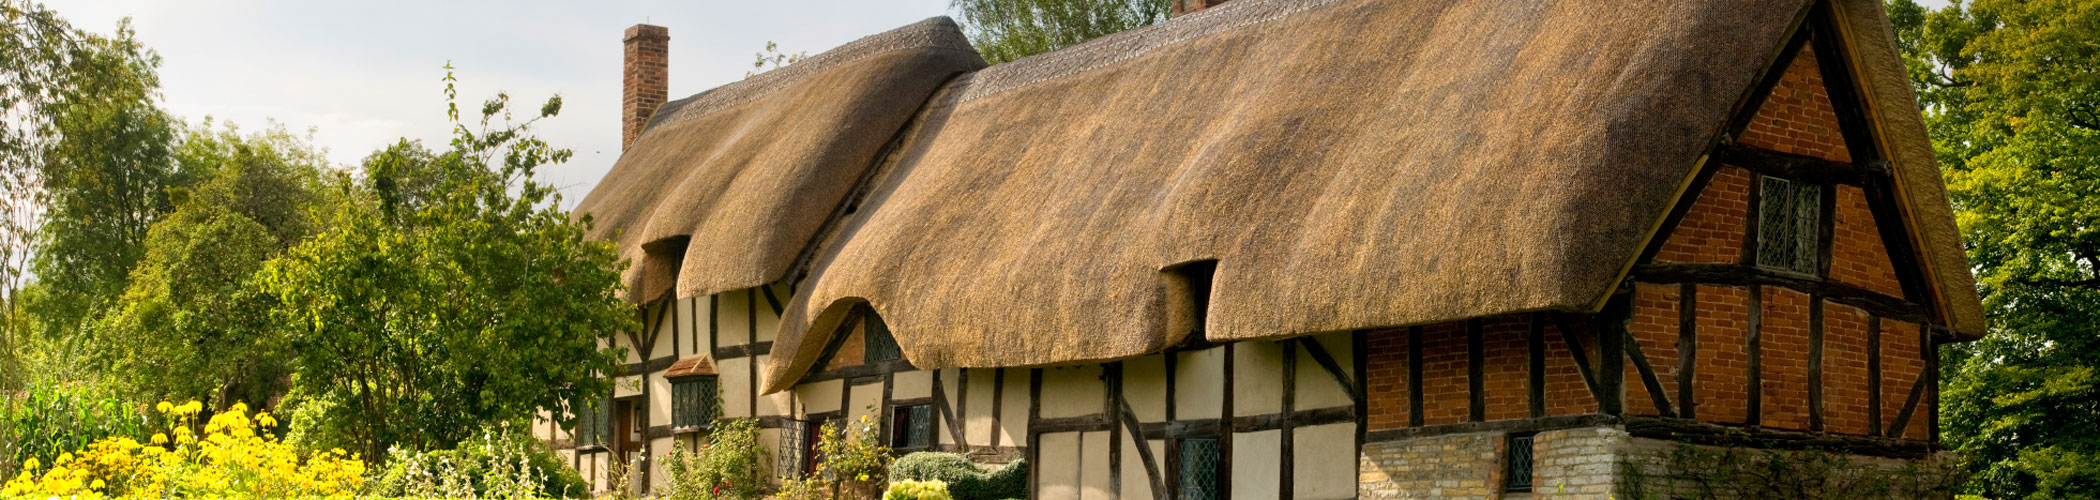 Warwickshire romantic holiday cottages and breaks